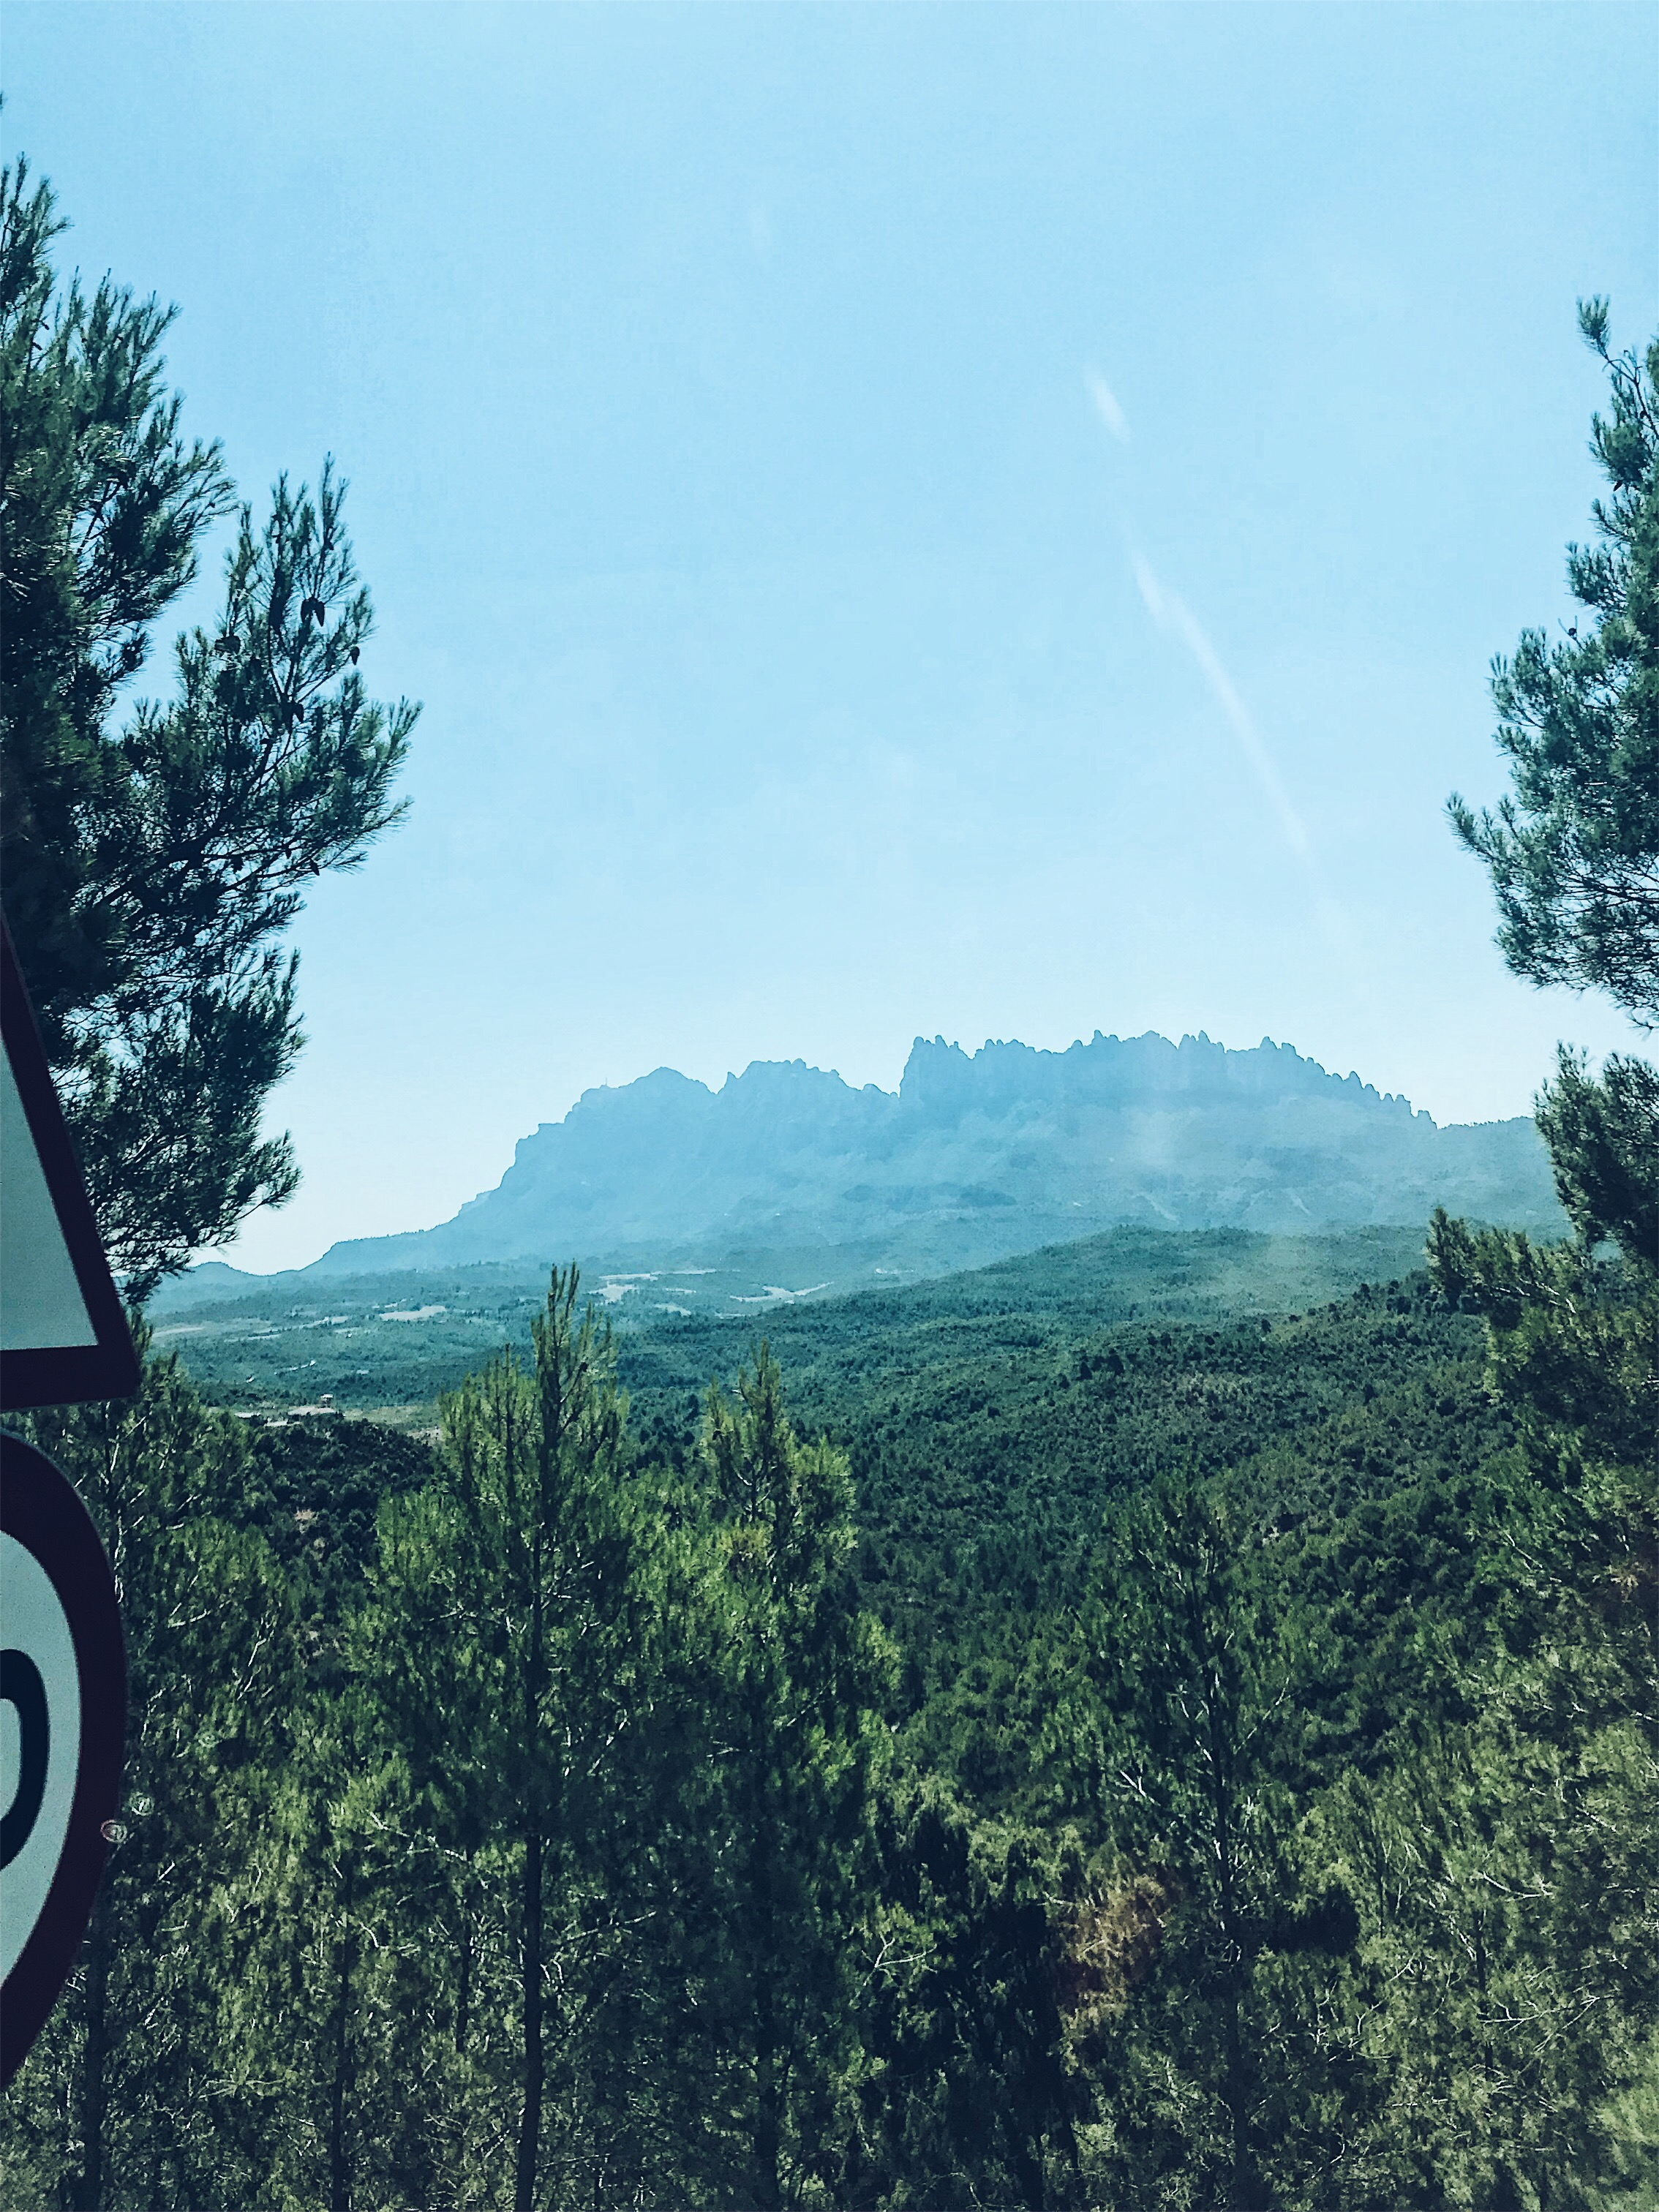 Views of Montserrat from the highway